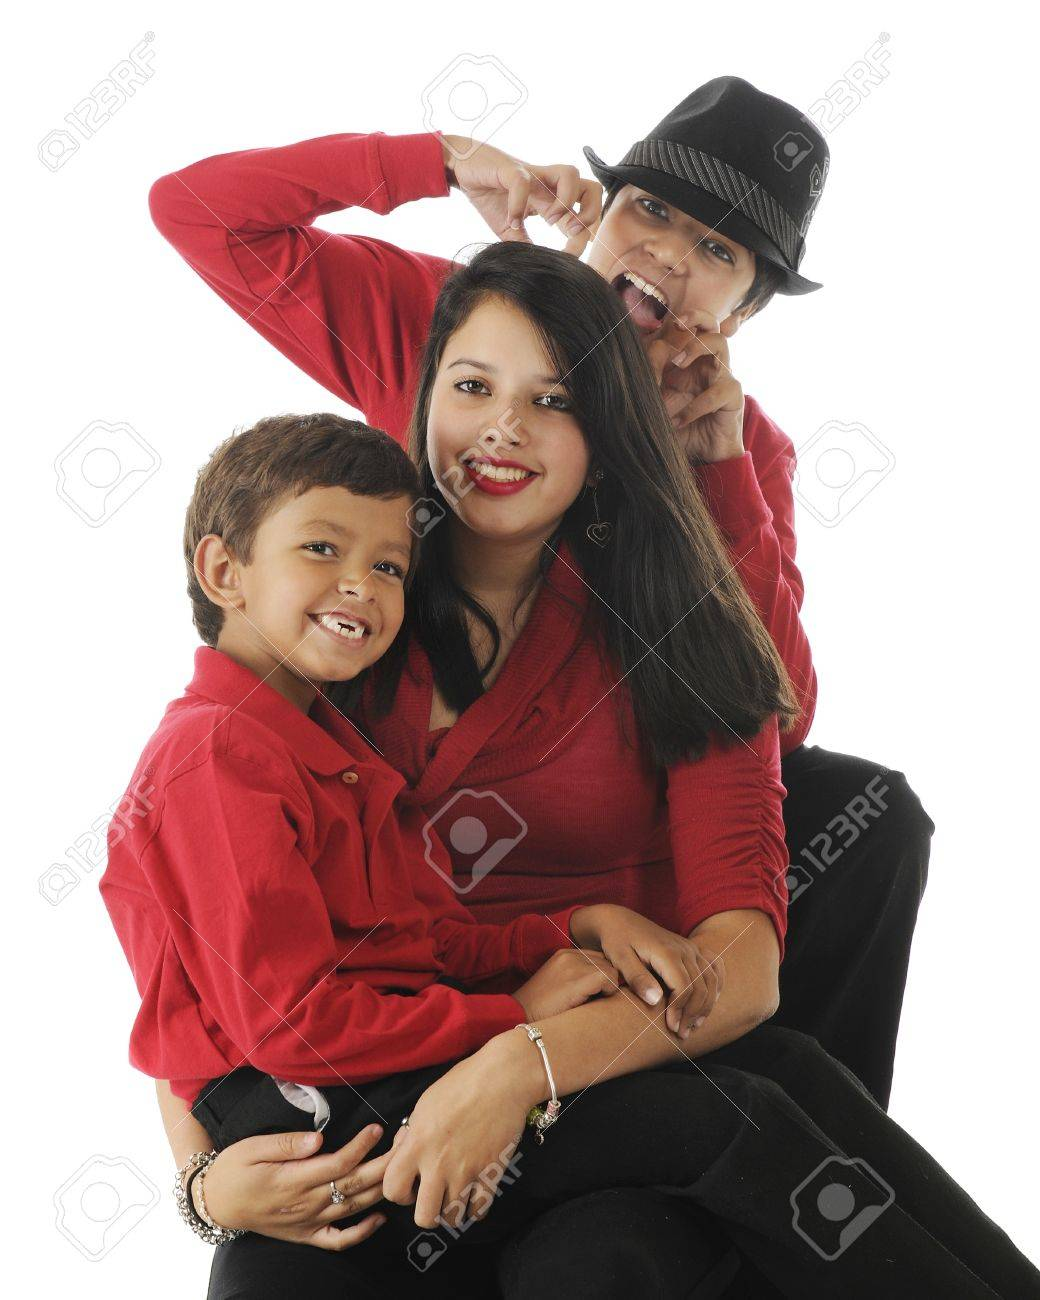 Three biracial siblings (Asian Indian and caucasian) ...a happy preschool boy sitting on the lap of his pretty teen sister with a preteen